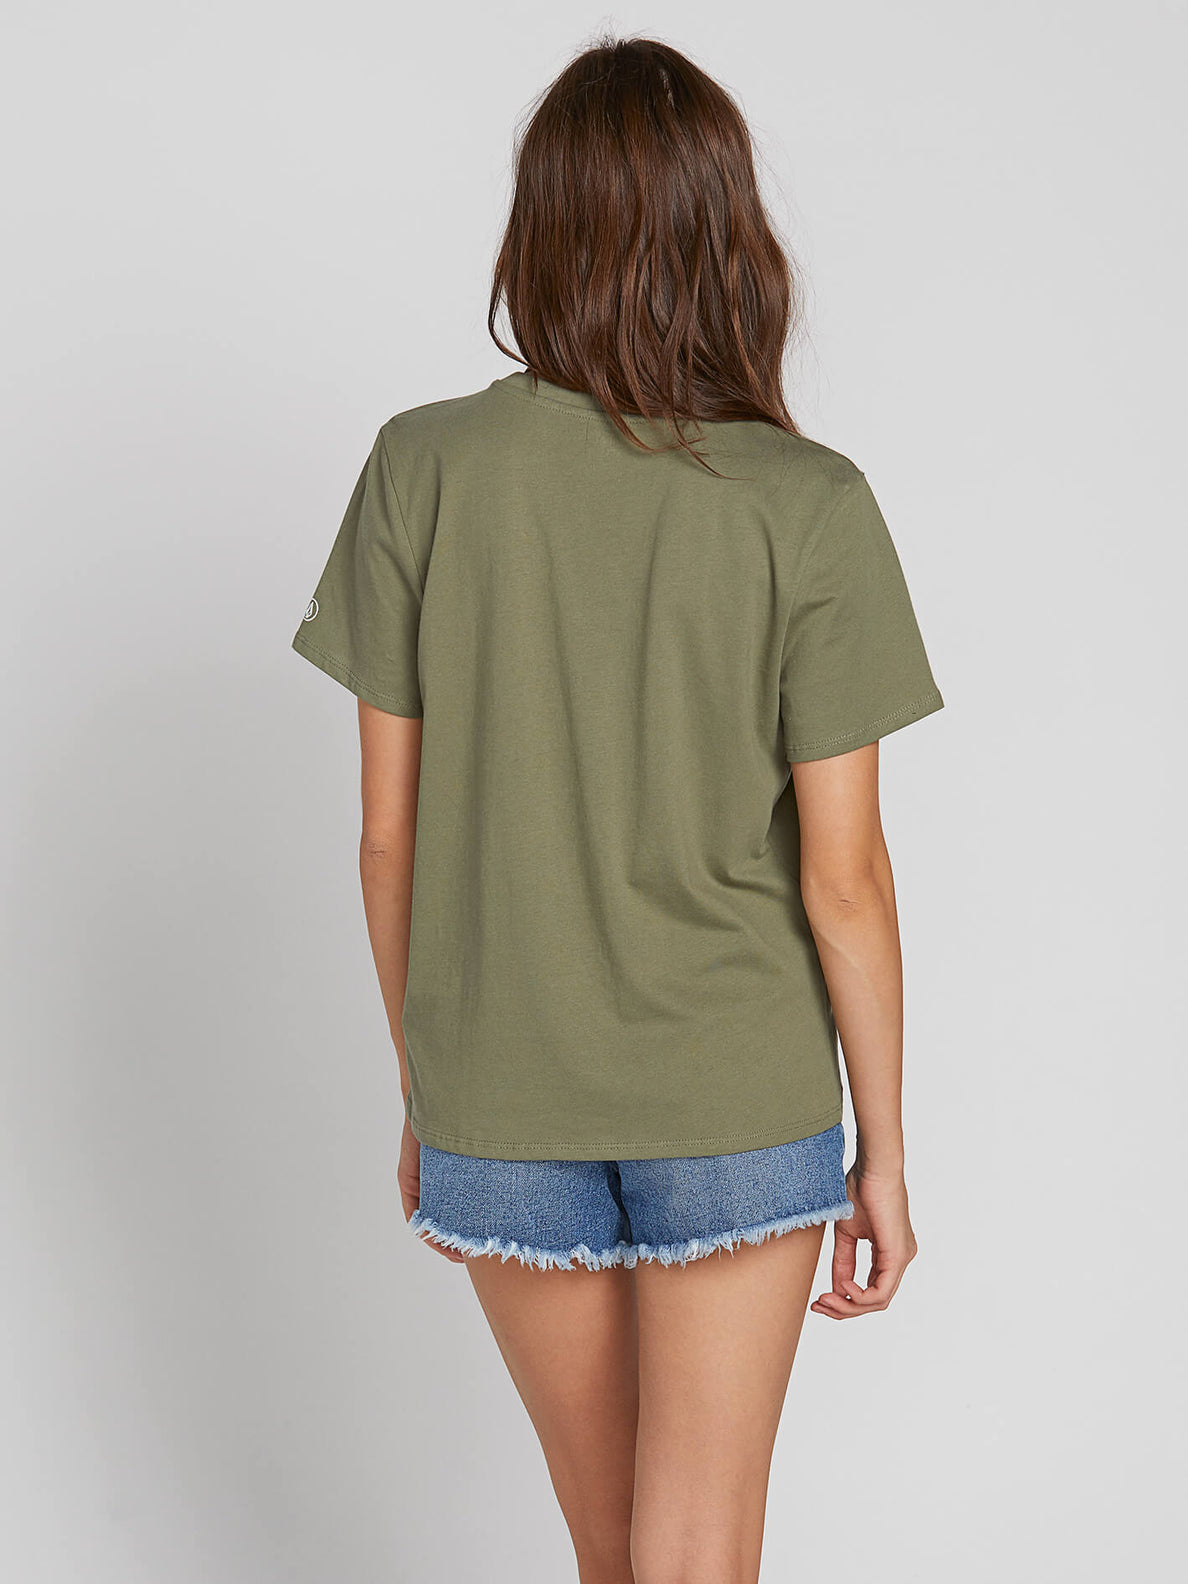 Womens Solid Short Sleeve Tee - Army Green Combo